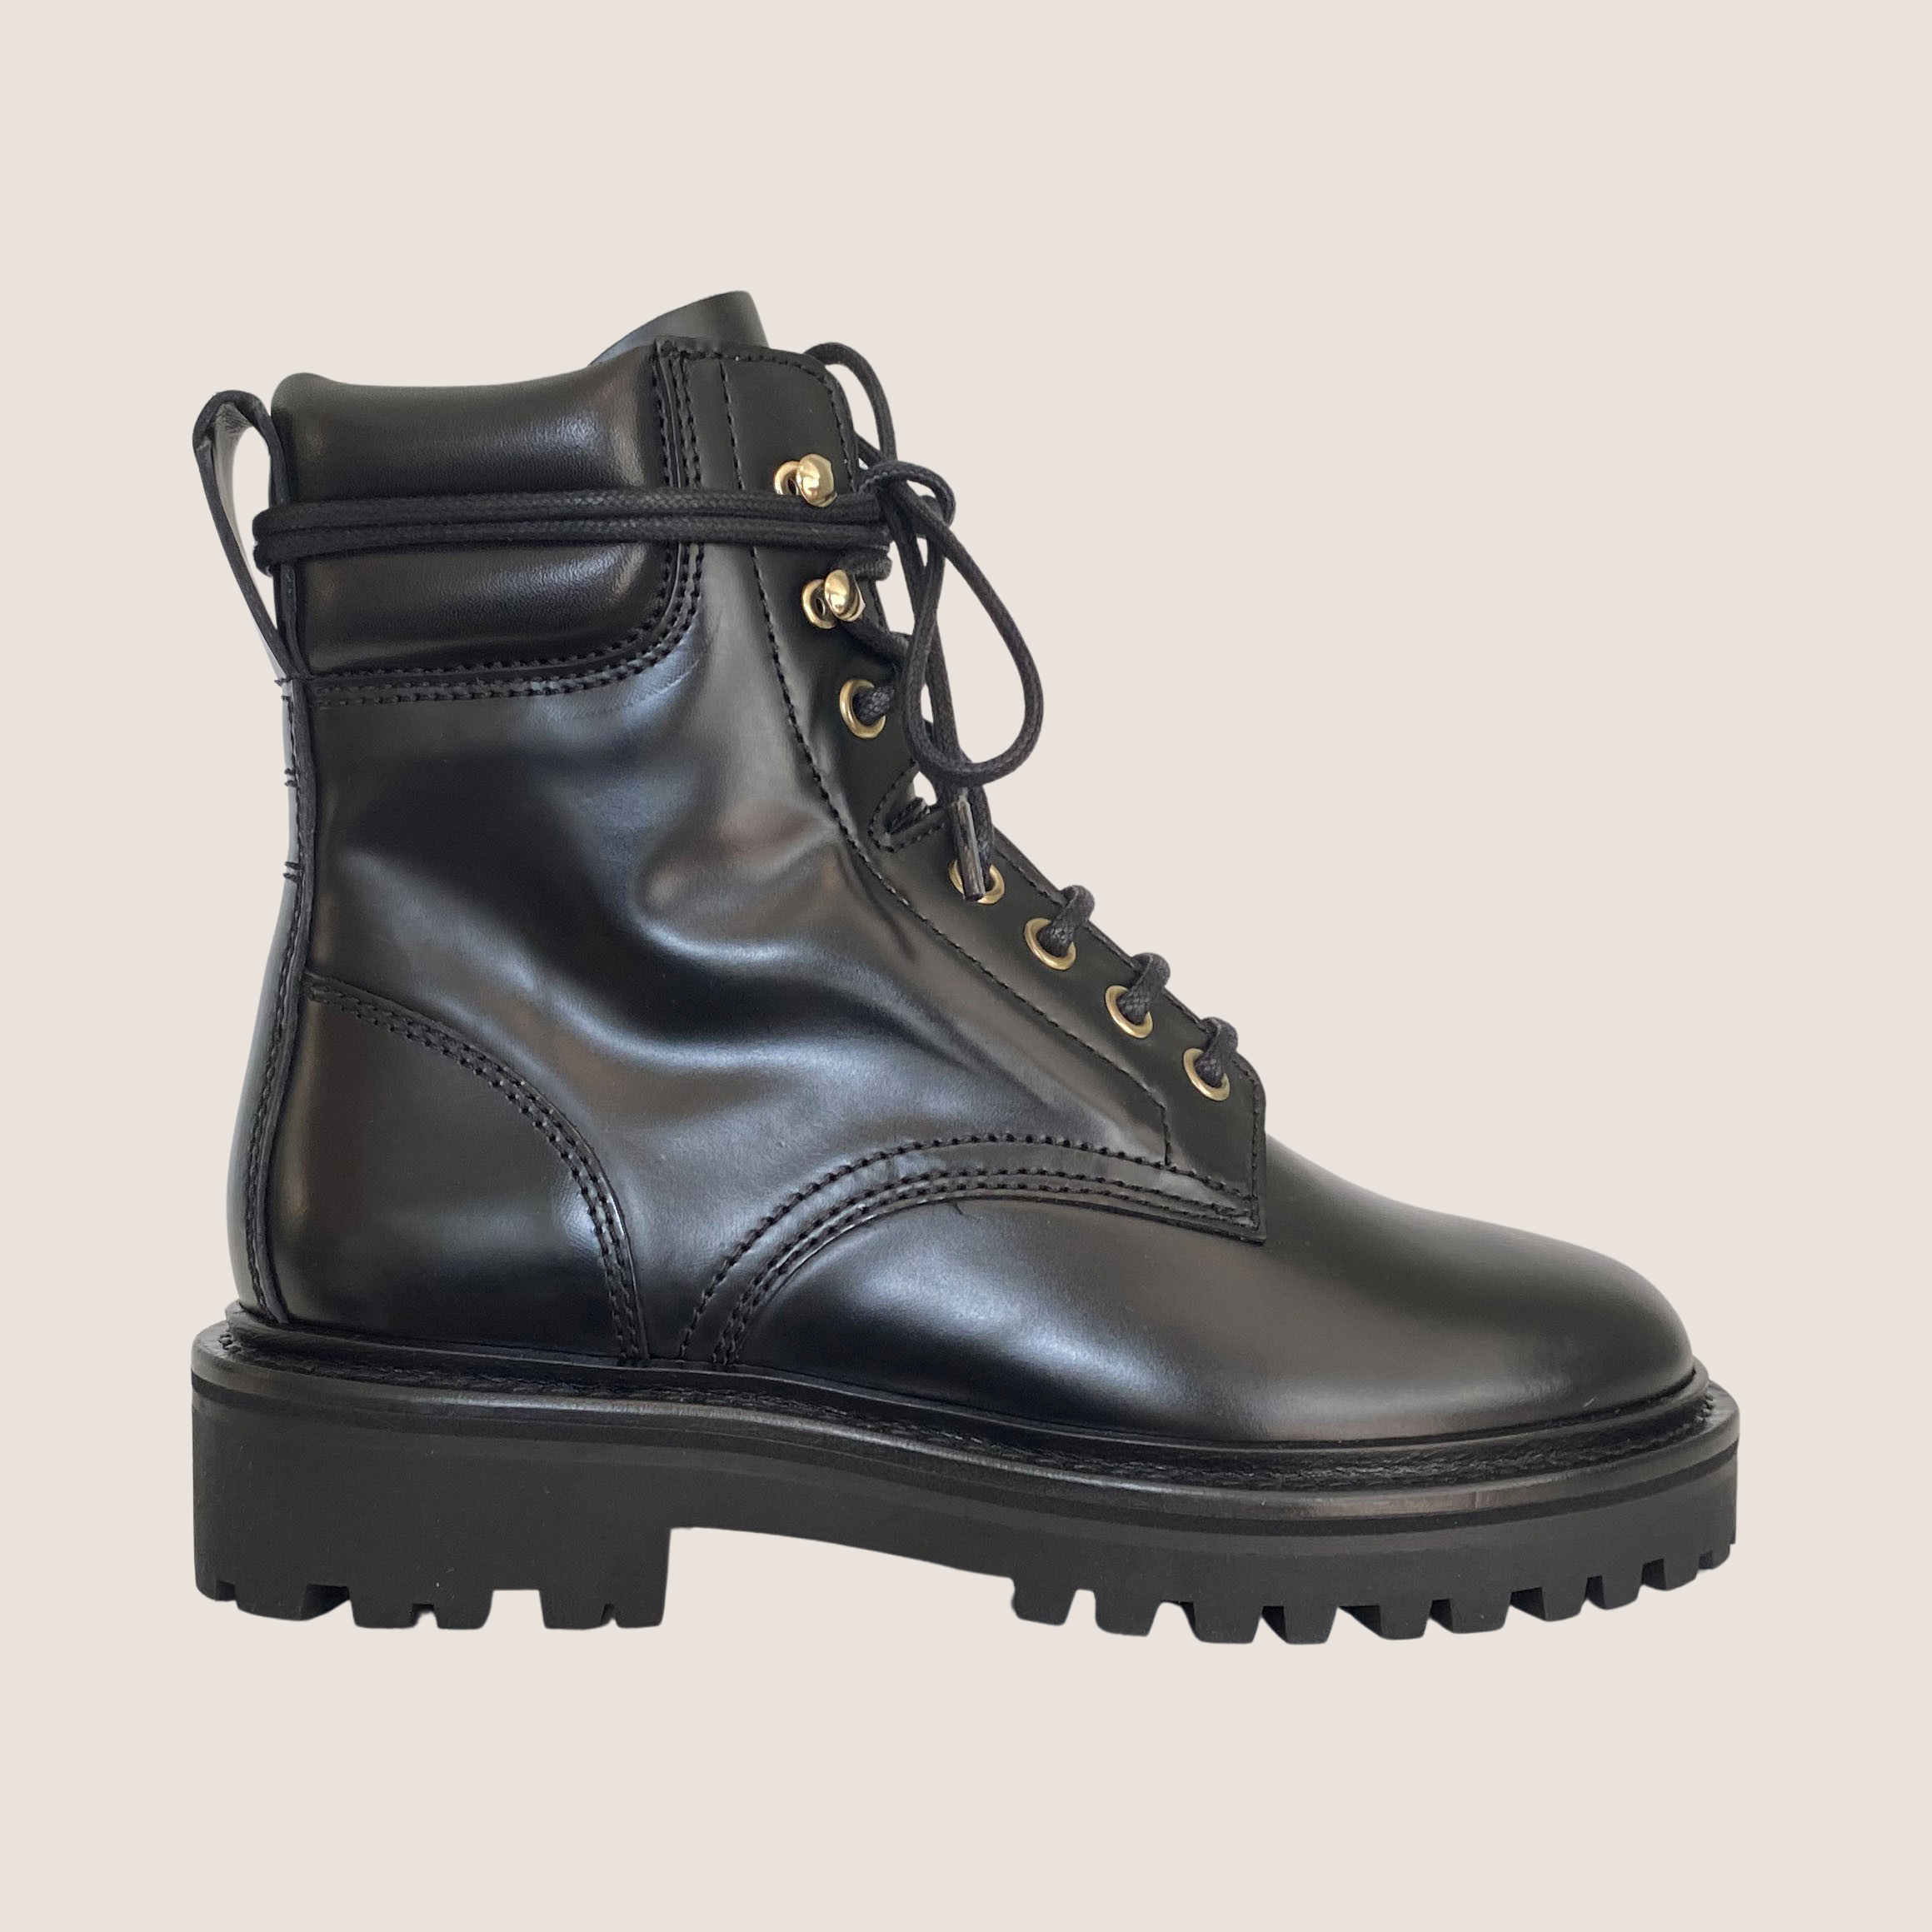 Camp Lace Up Boots